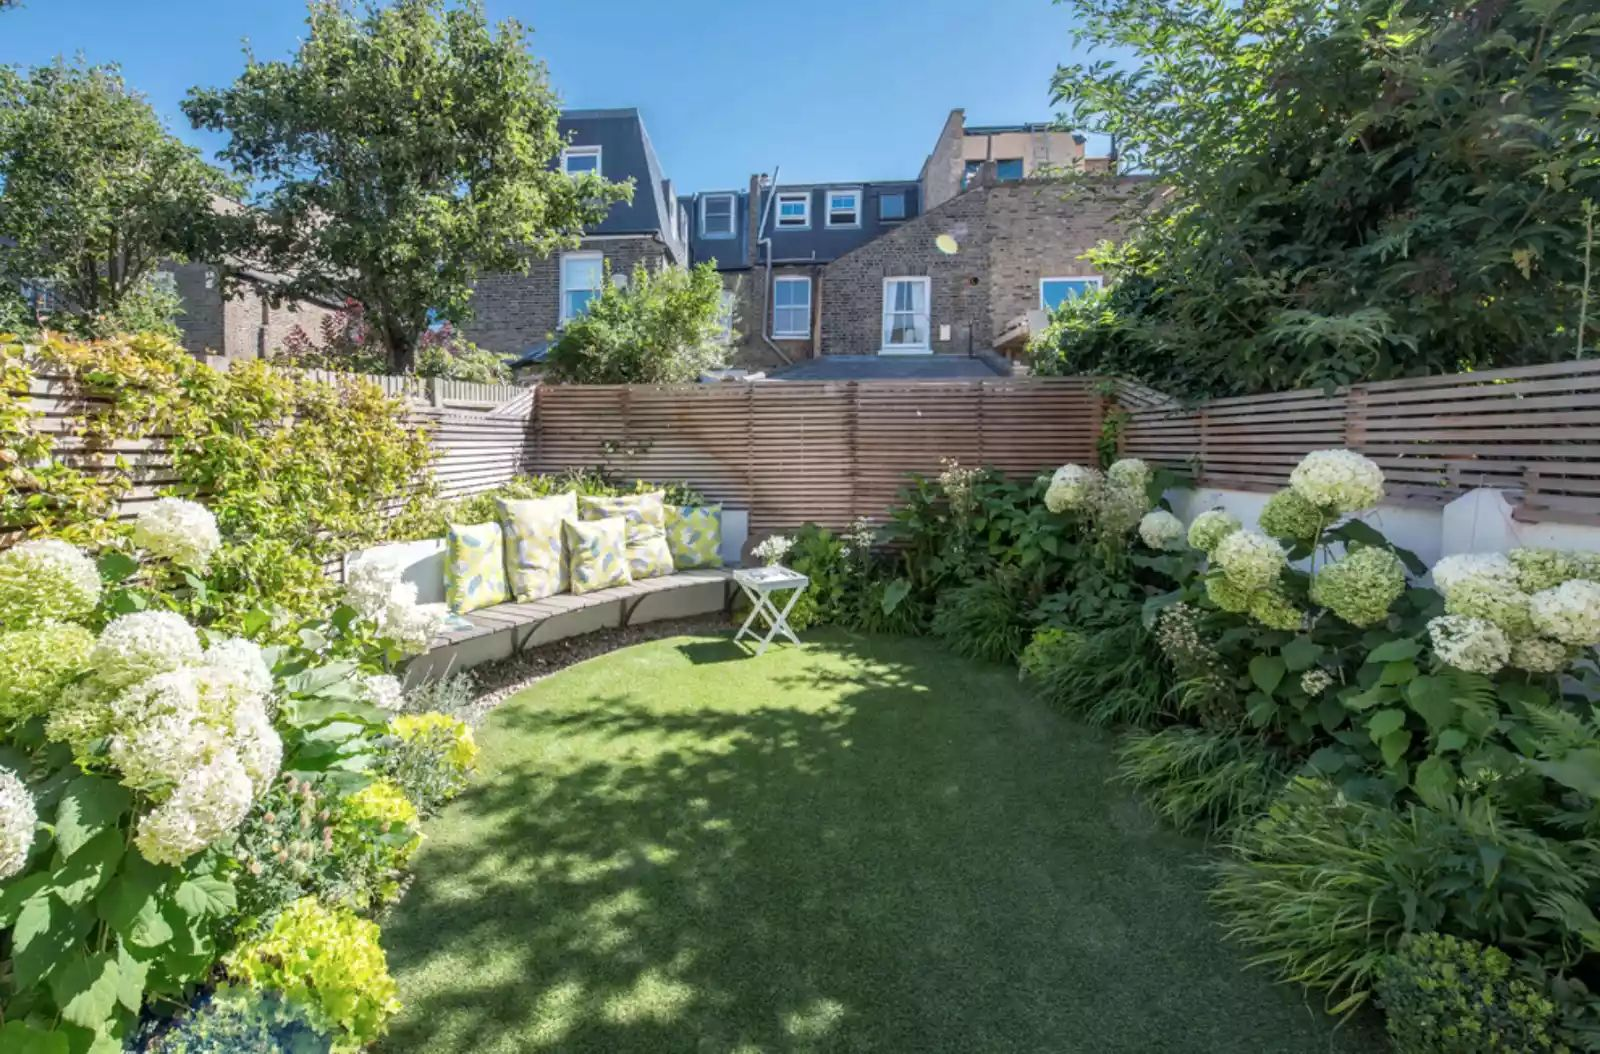 Intimate English Garden -   Beautiful Low Maintenance Front Yard Garden and Landscaping Ideas